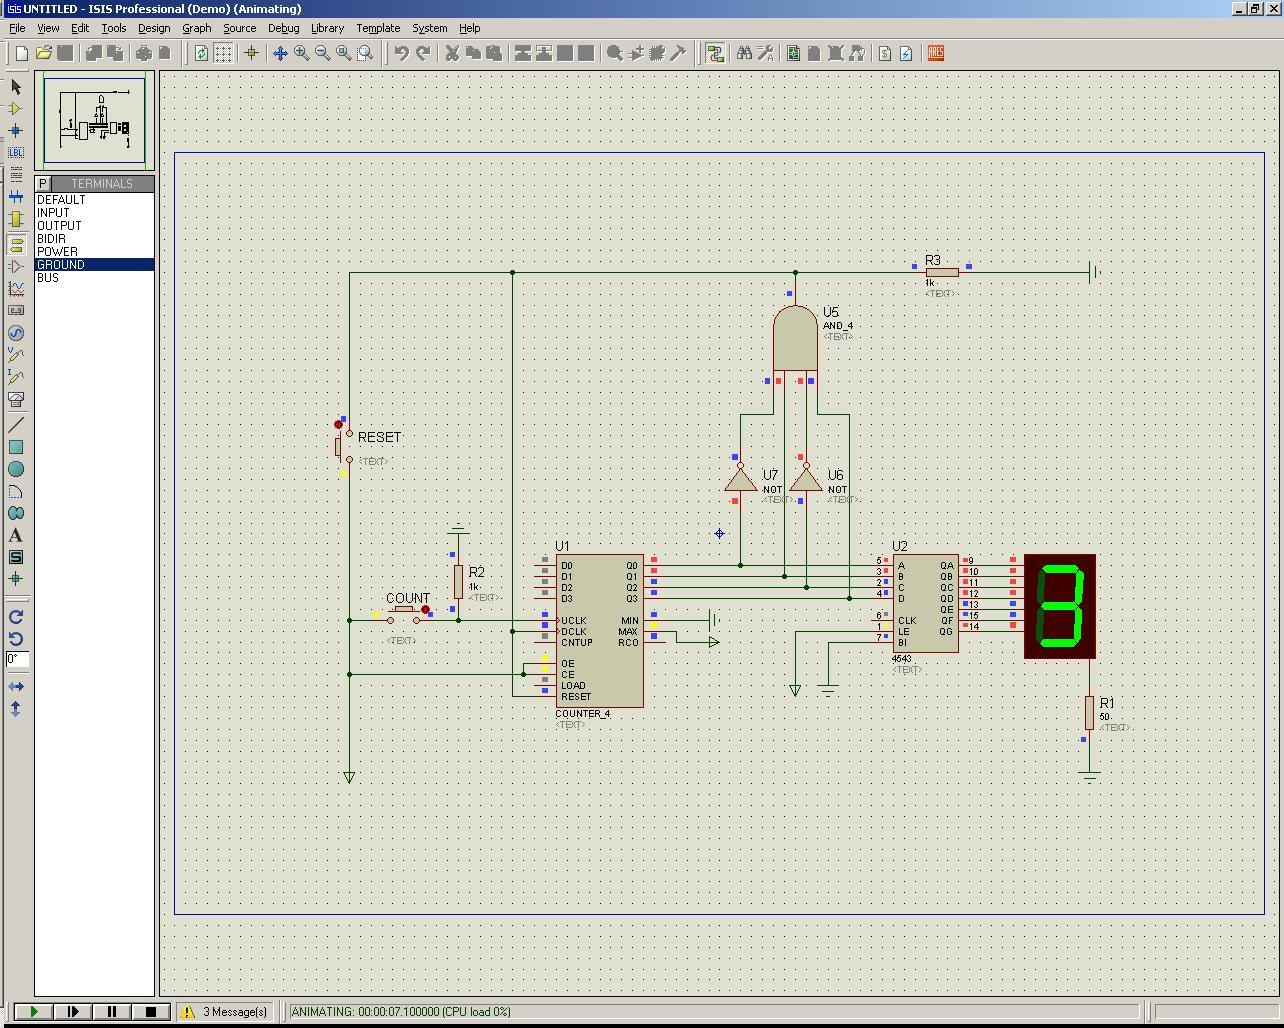 Circuit Simulation Program Best Secret Wiring Diagram Free Electronic Drawing Software Download Design A By Sajidali1996 Rh Fiverr Com For Windows 7